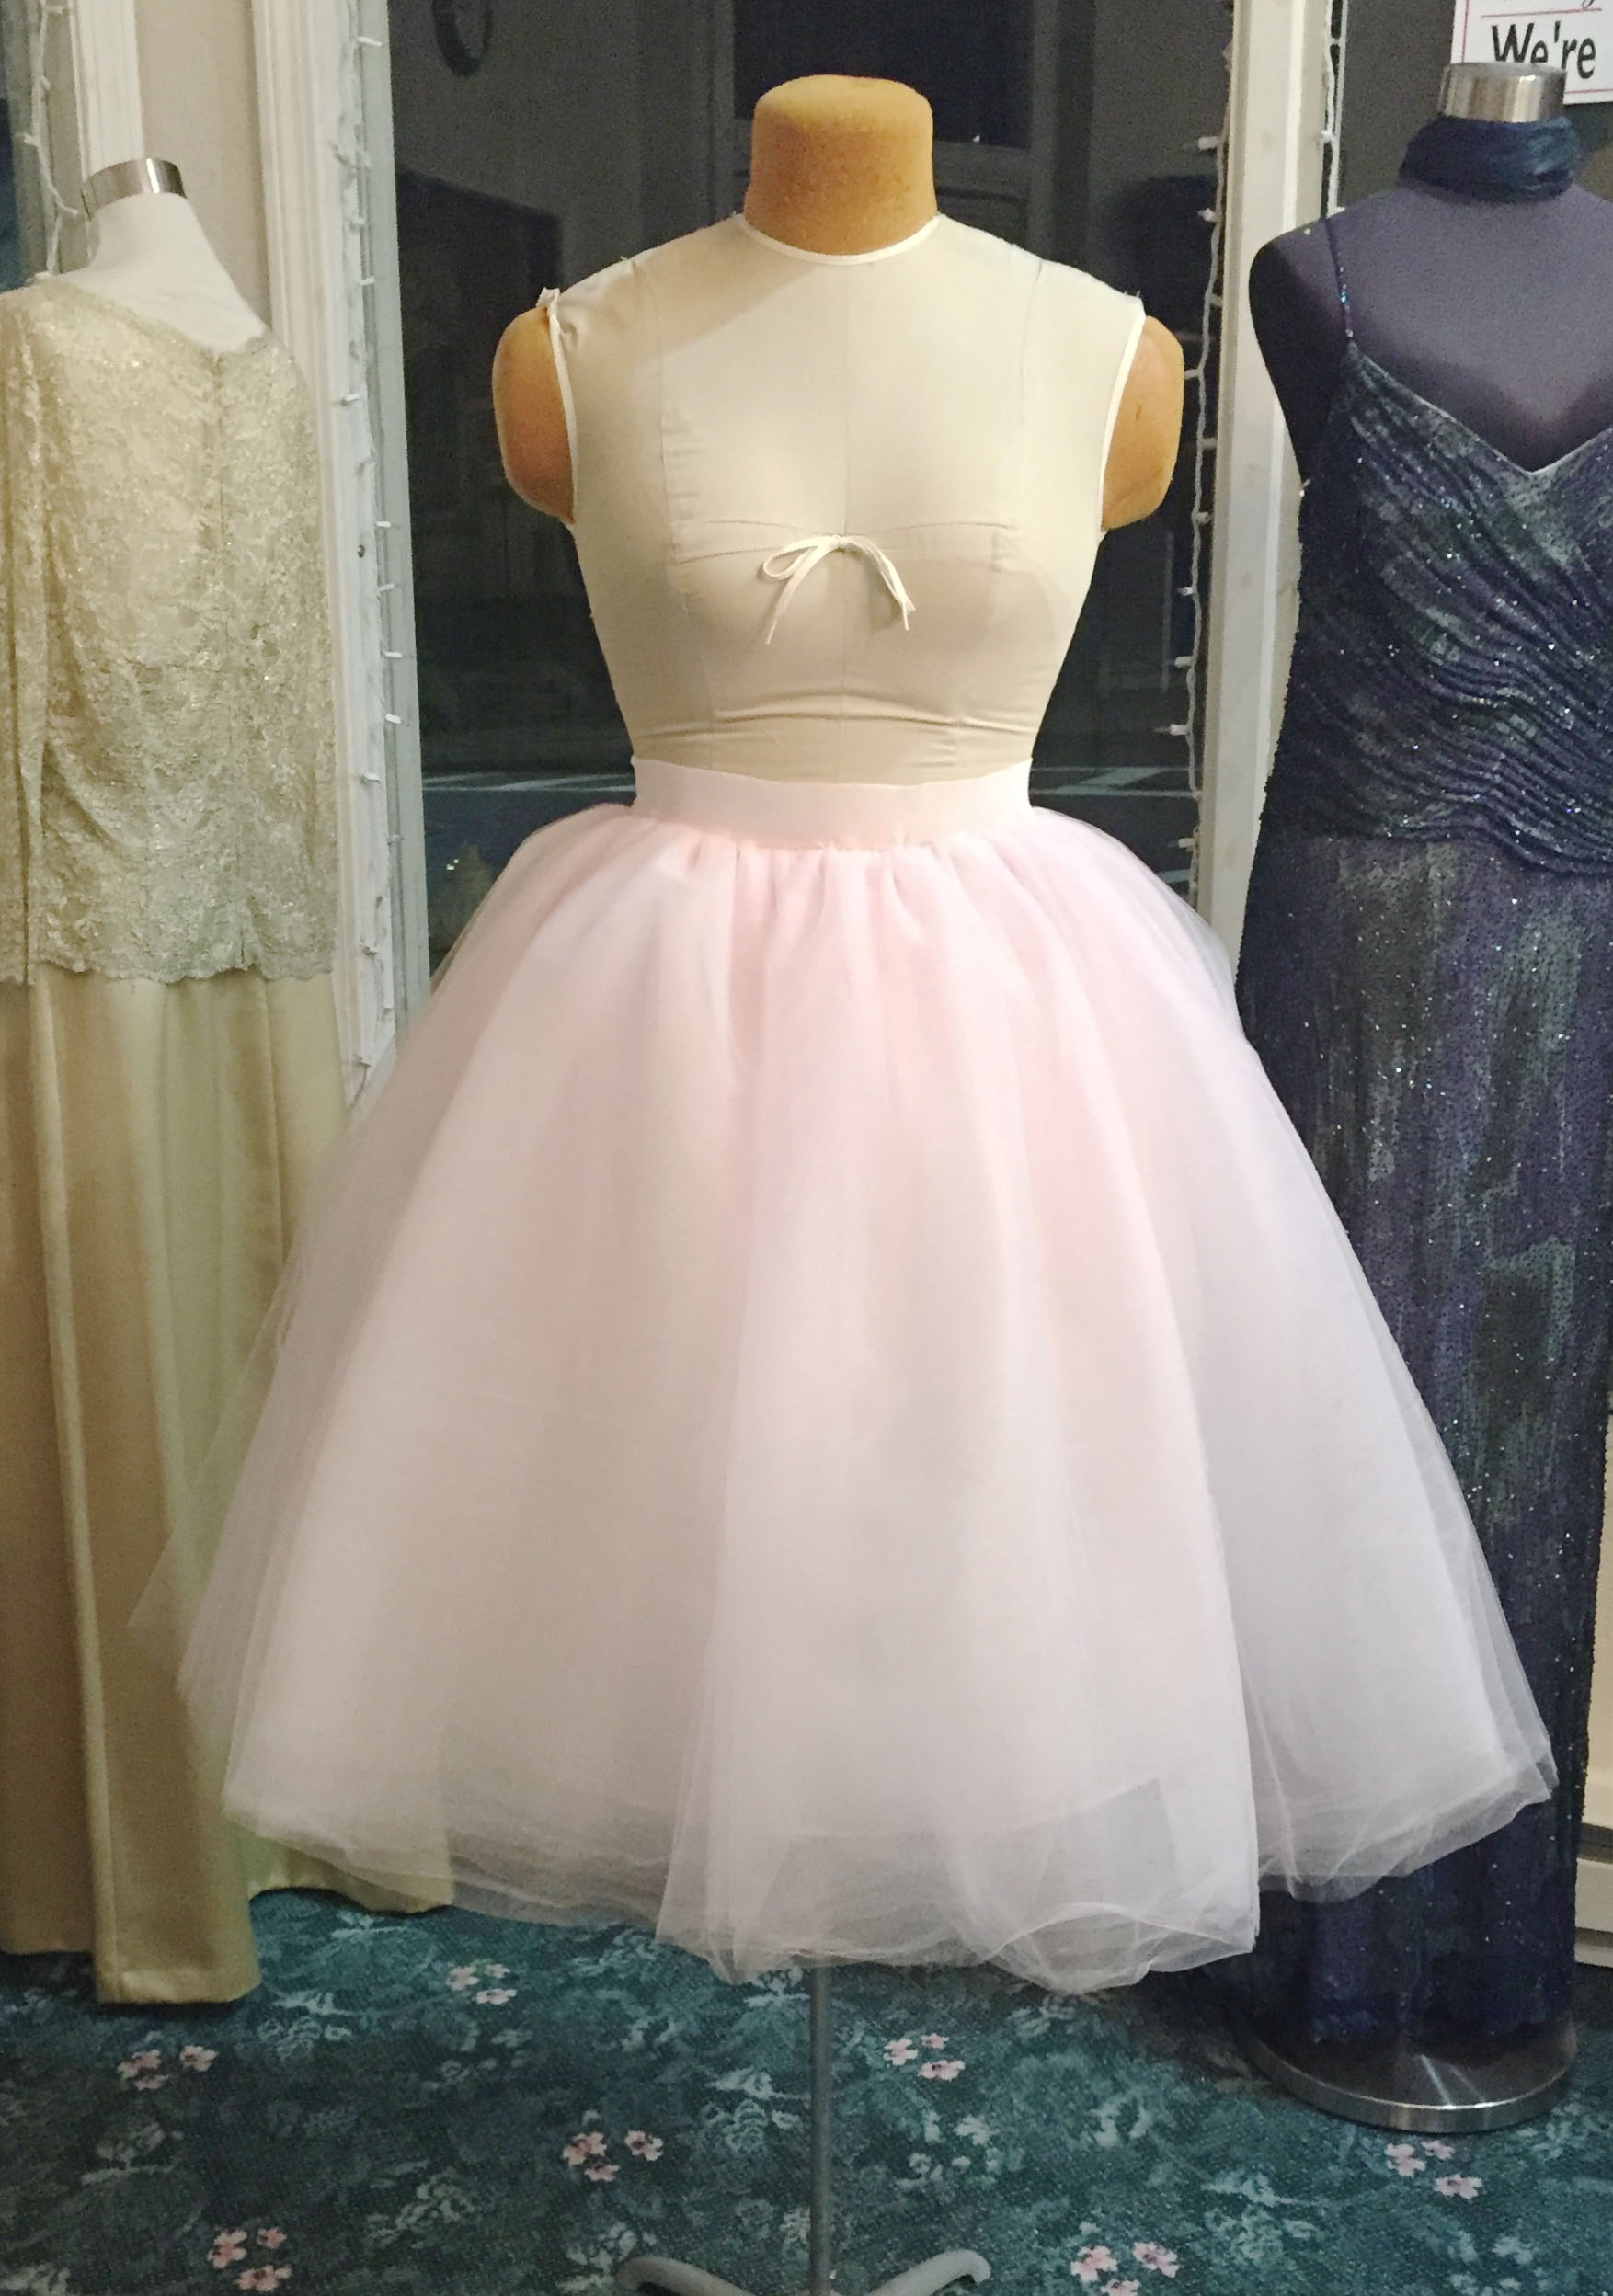 Buy Kalos Dress Shop Lace Bodice Tulle Puffy Flower Girl Dress Lace Appliques Girls First Communion Dress Pageant Gowns and other Special Occasion at 3aaa.ml Our wide selection is elegible for free shipping and free returns.